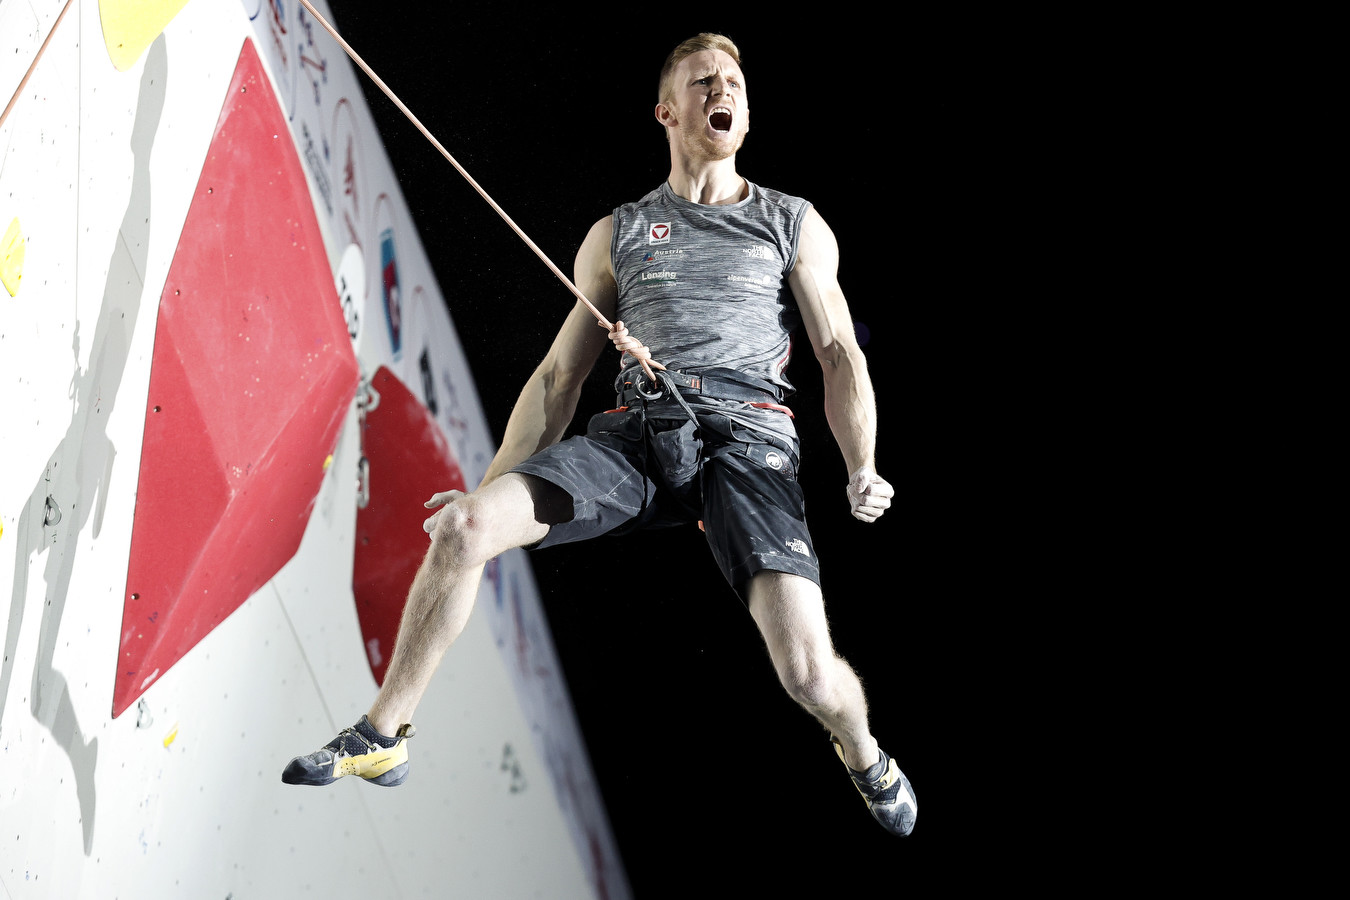 Jakob Schubert is the Lead World Champion for the third time